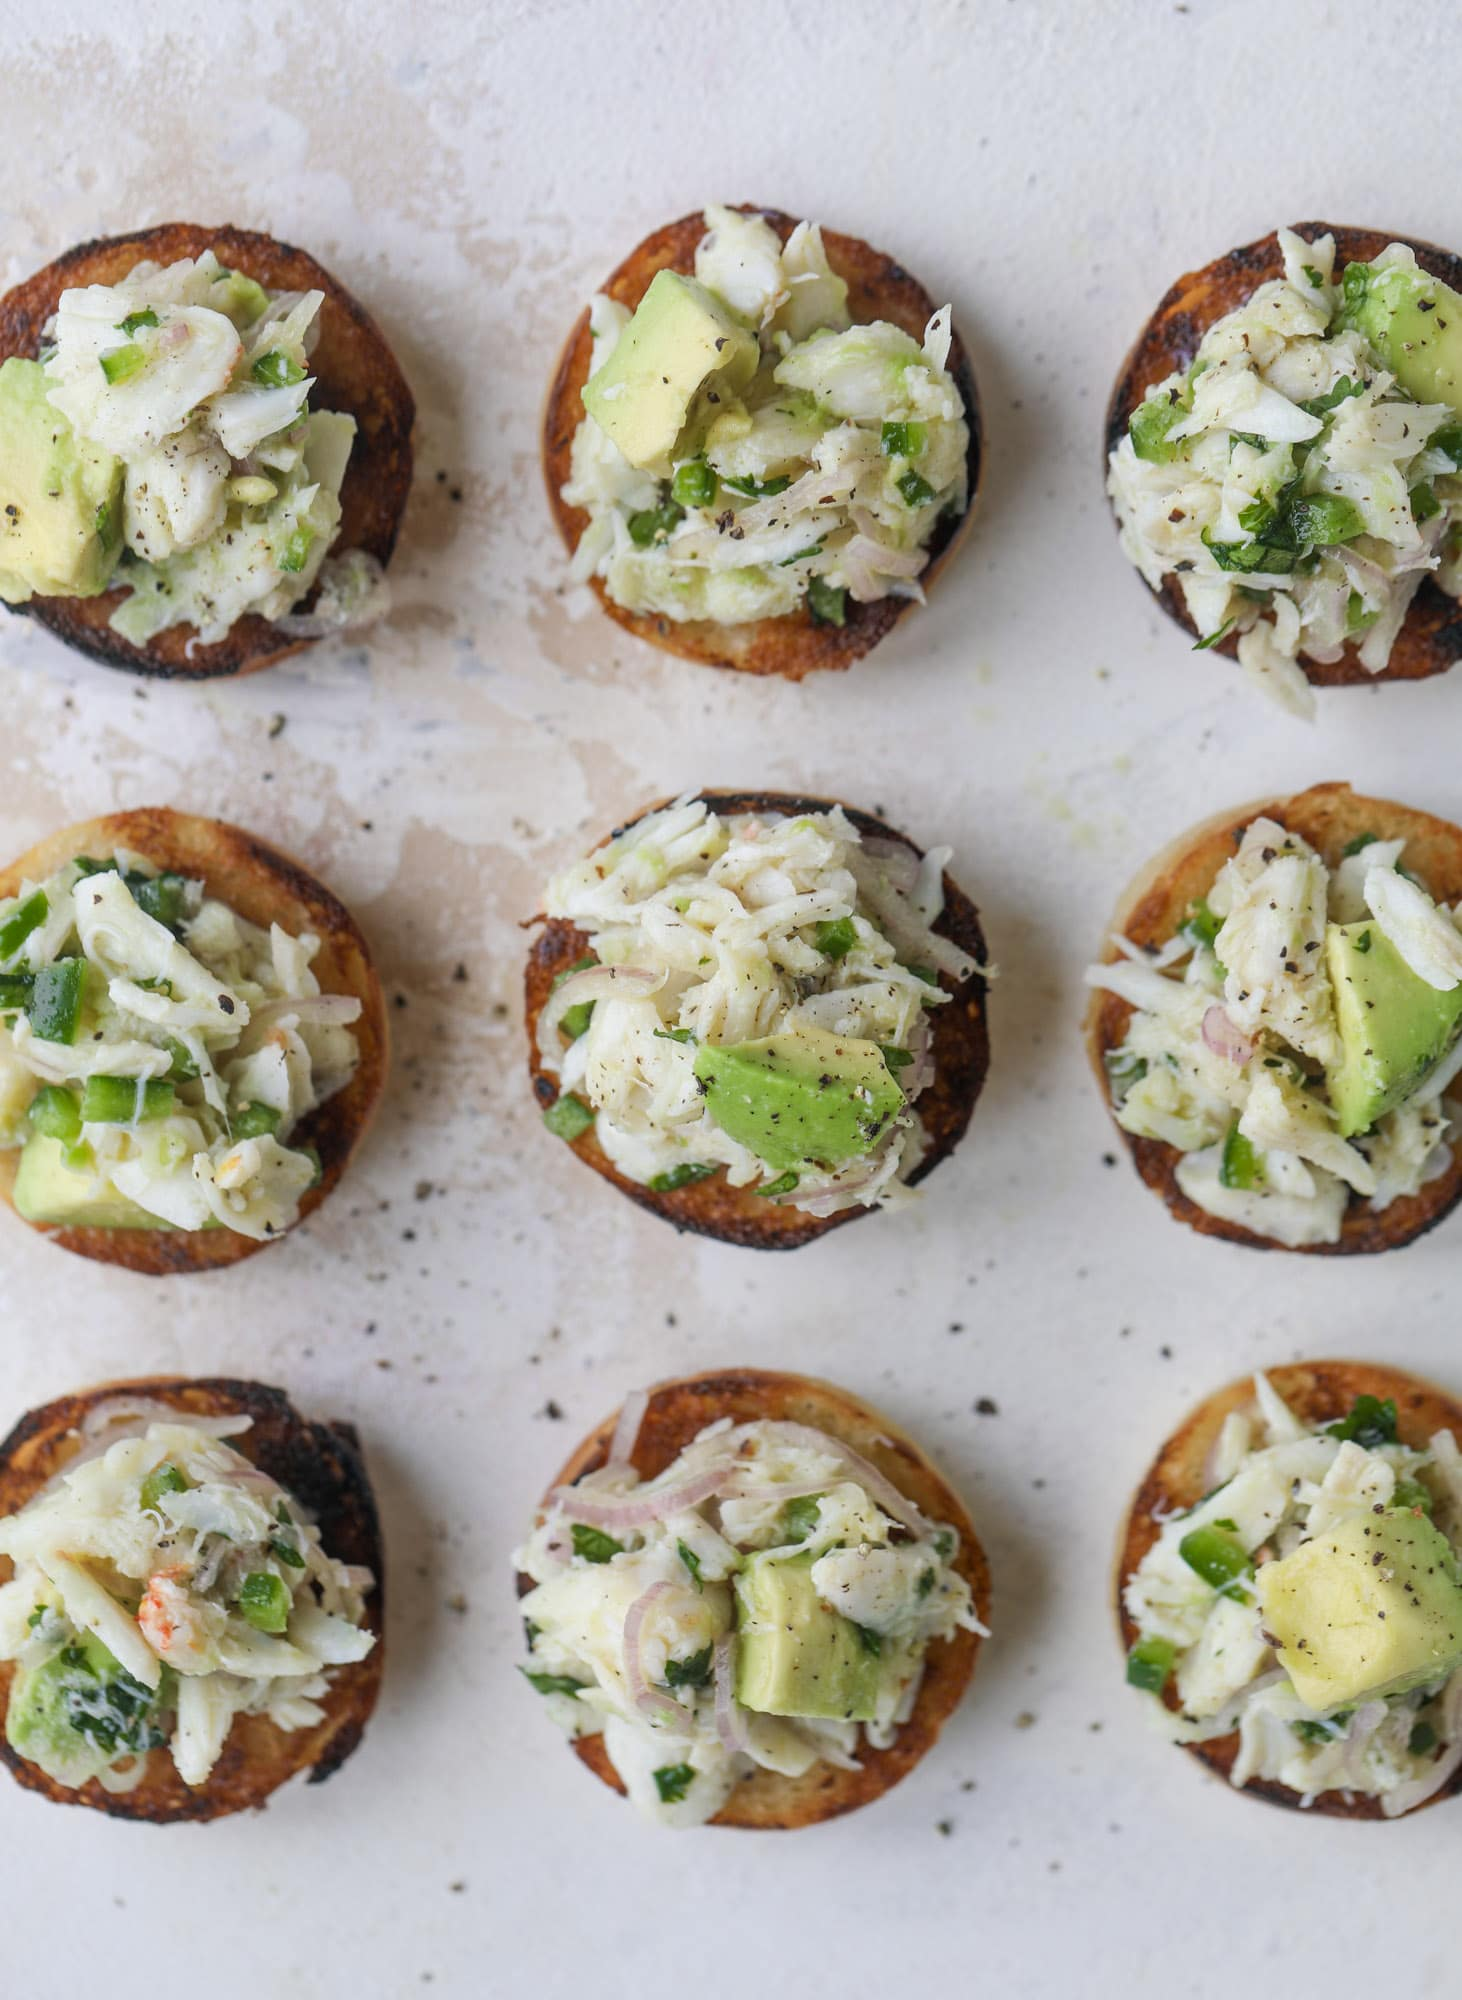 The cutest crab salad toasts are perfect for a snack, appetizer or light meal with a greens salad. This avocado crab salad is so refreshing and light!